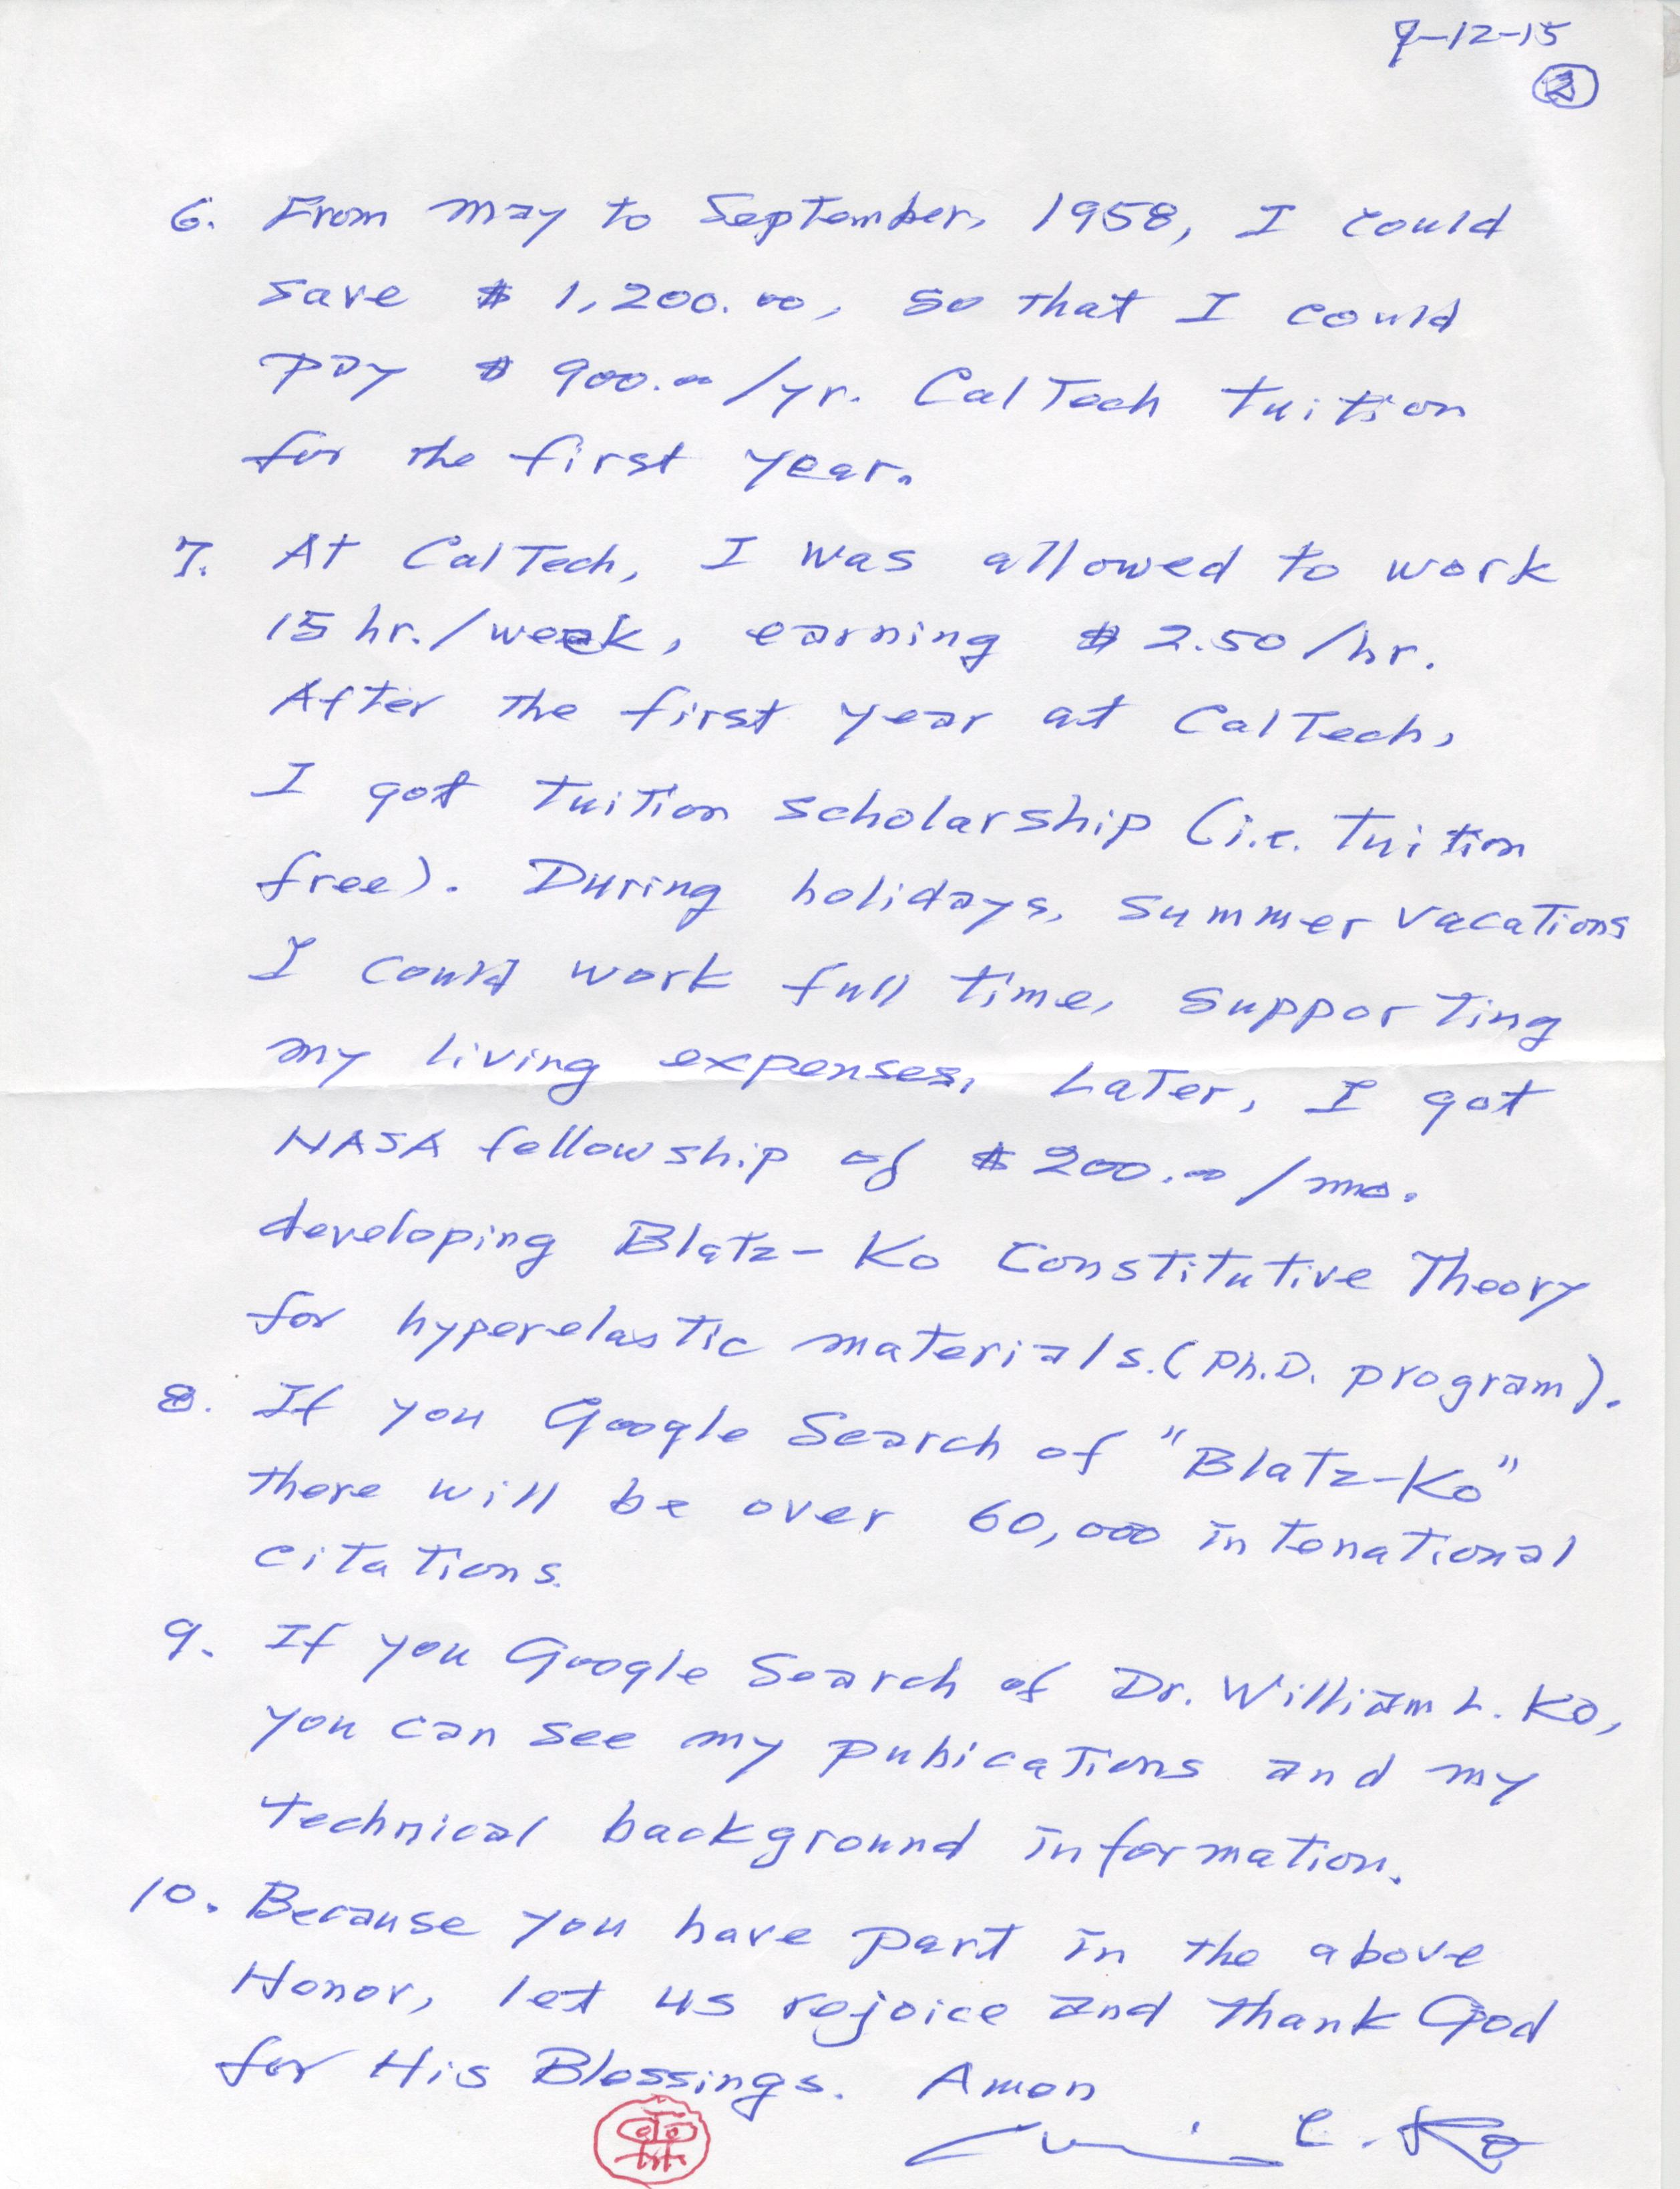 letter from william ko - 0010